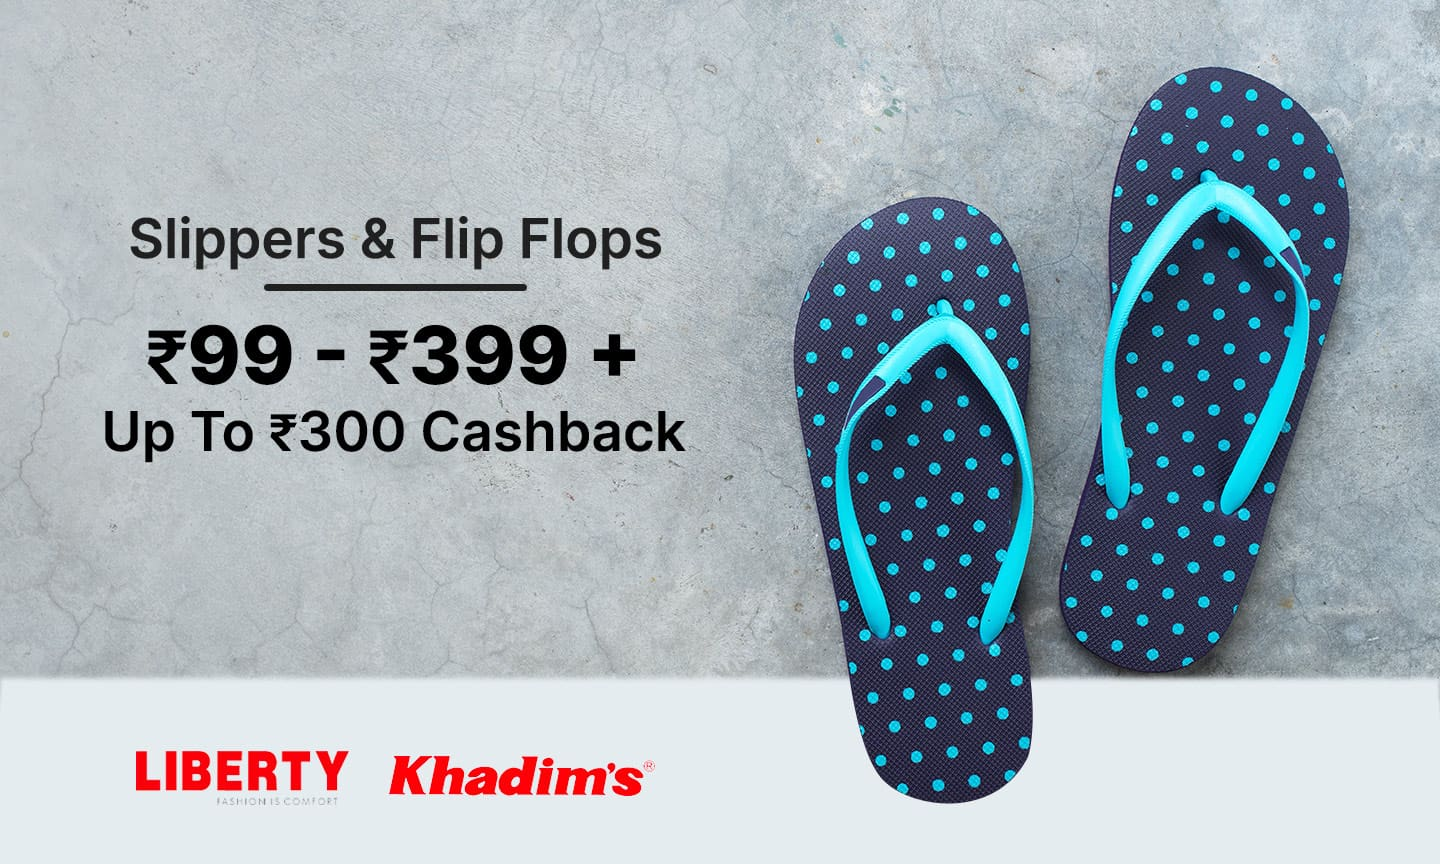 Slippers & Flip Flops | Rs 99 - Rs 399